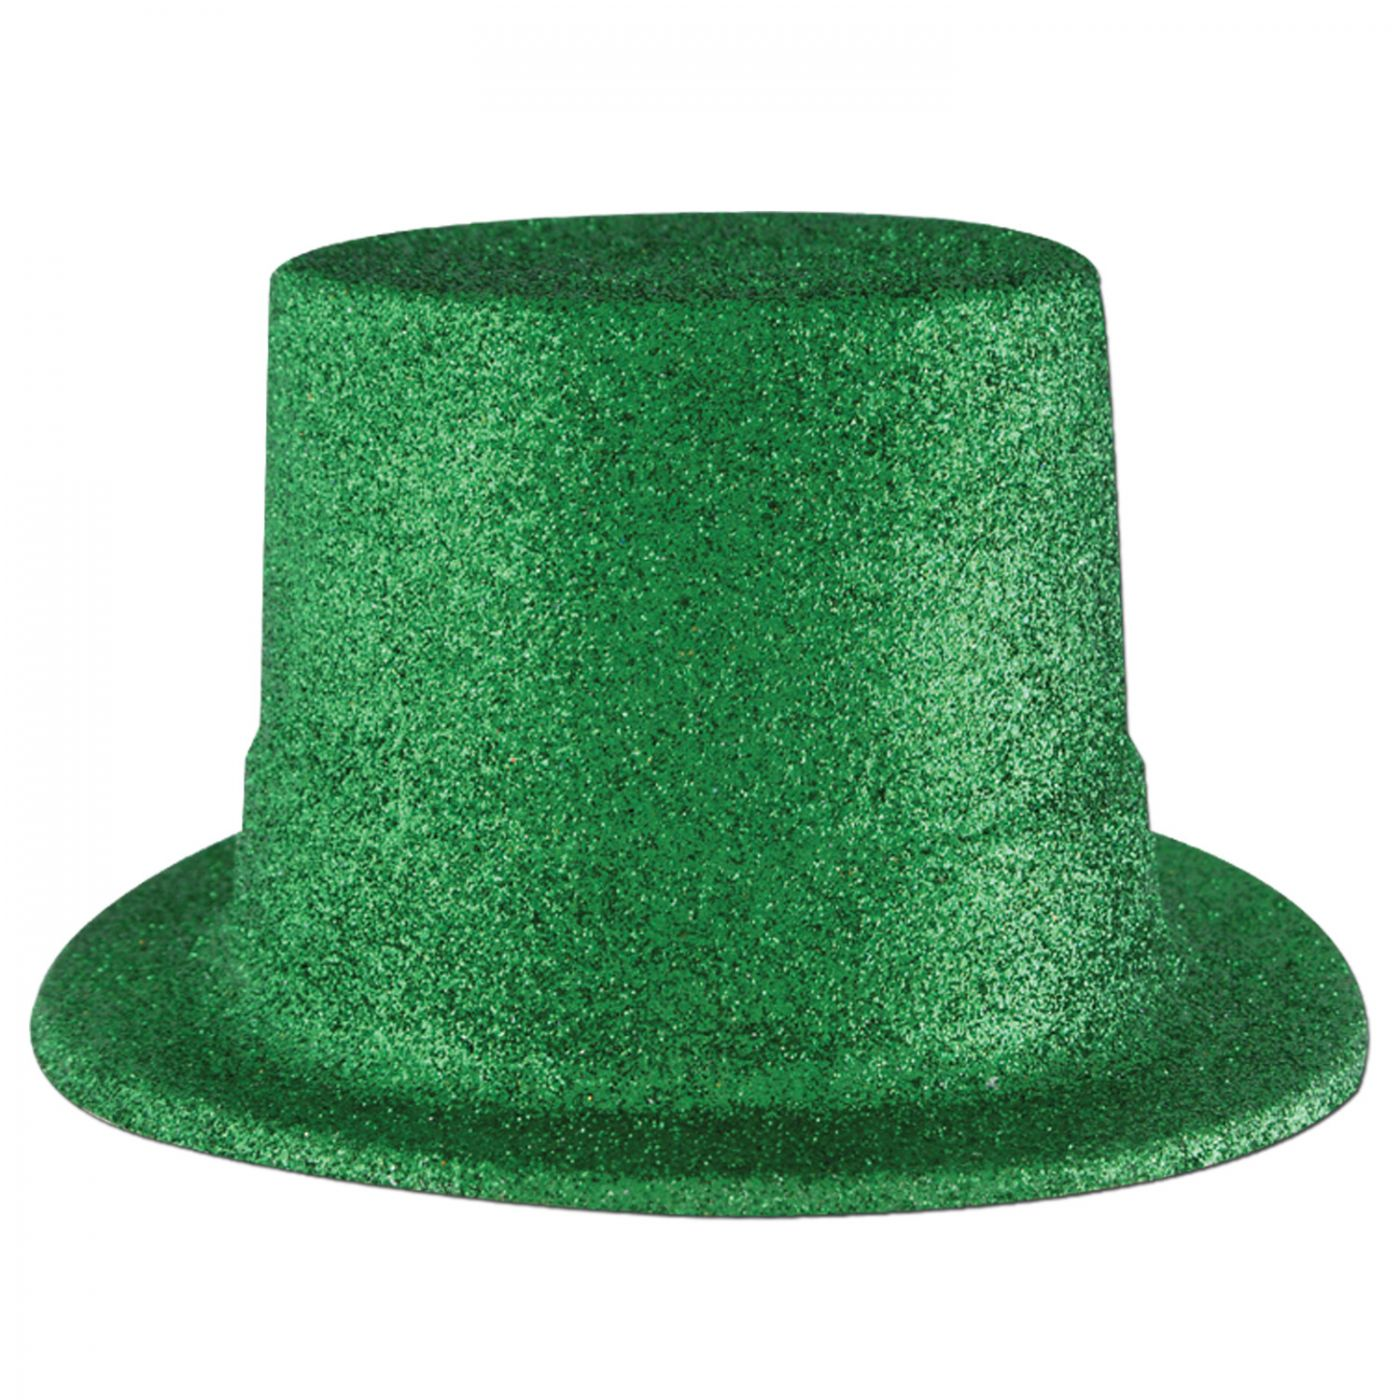 Green Glittered Top Hat (24) image